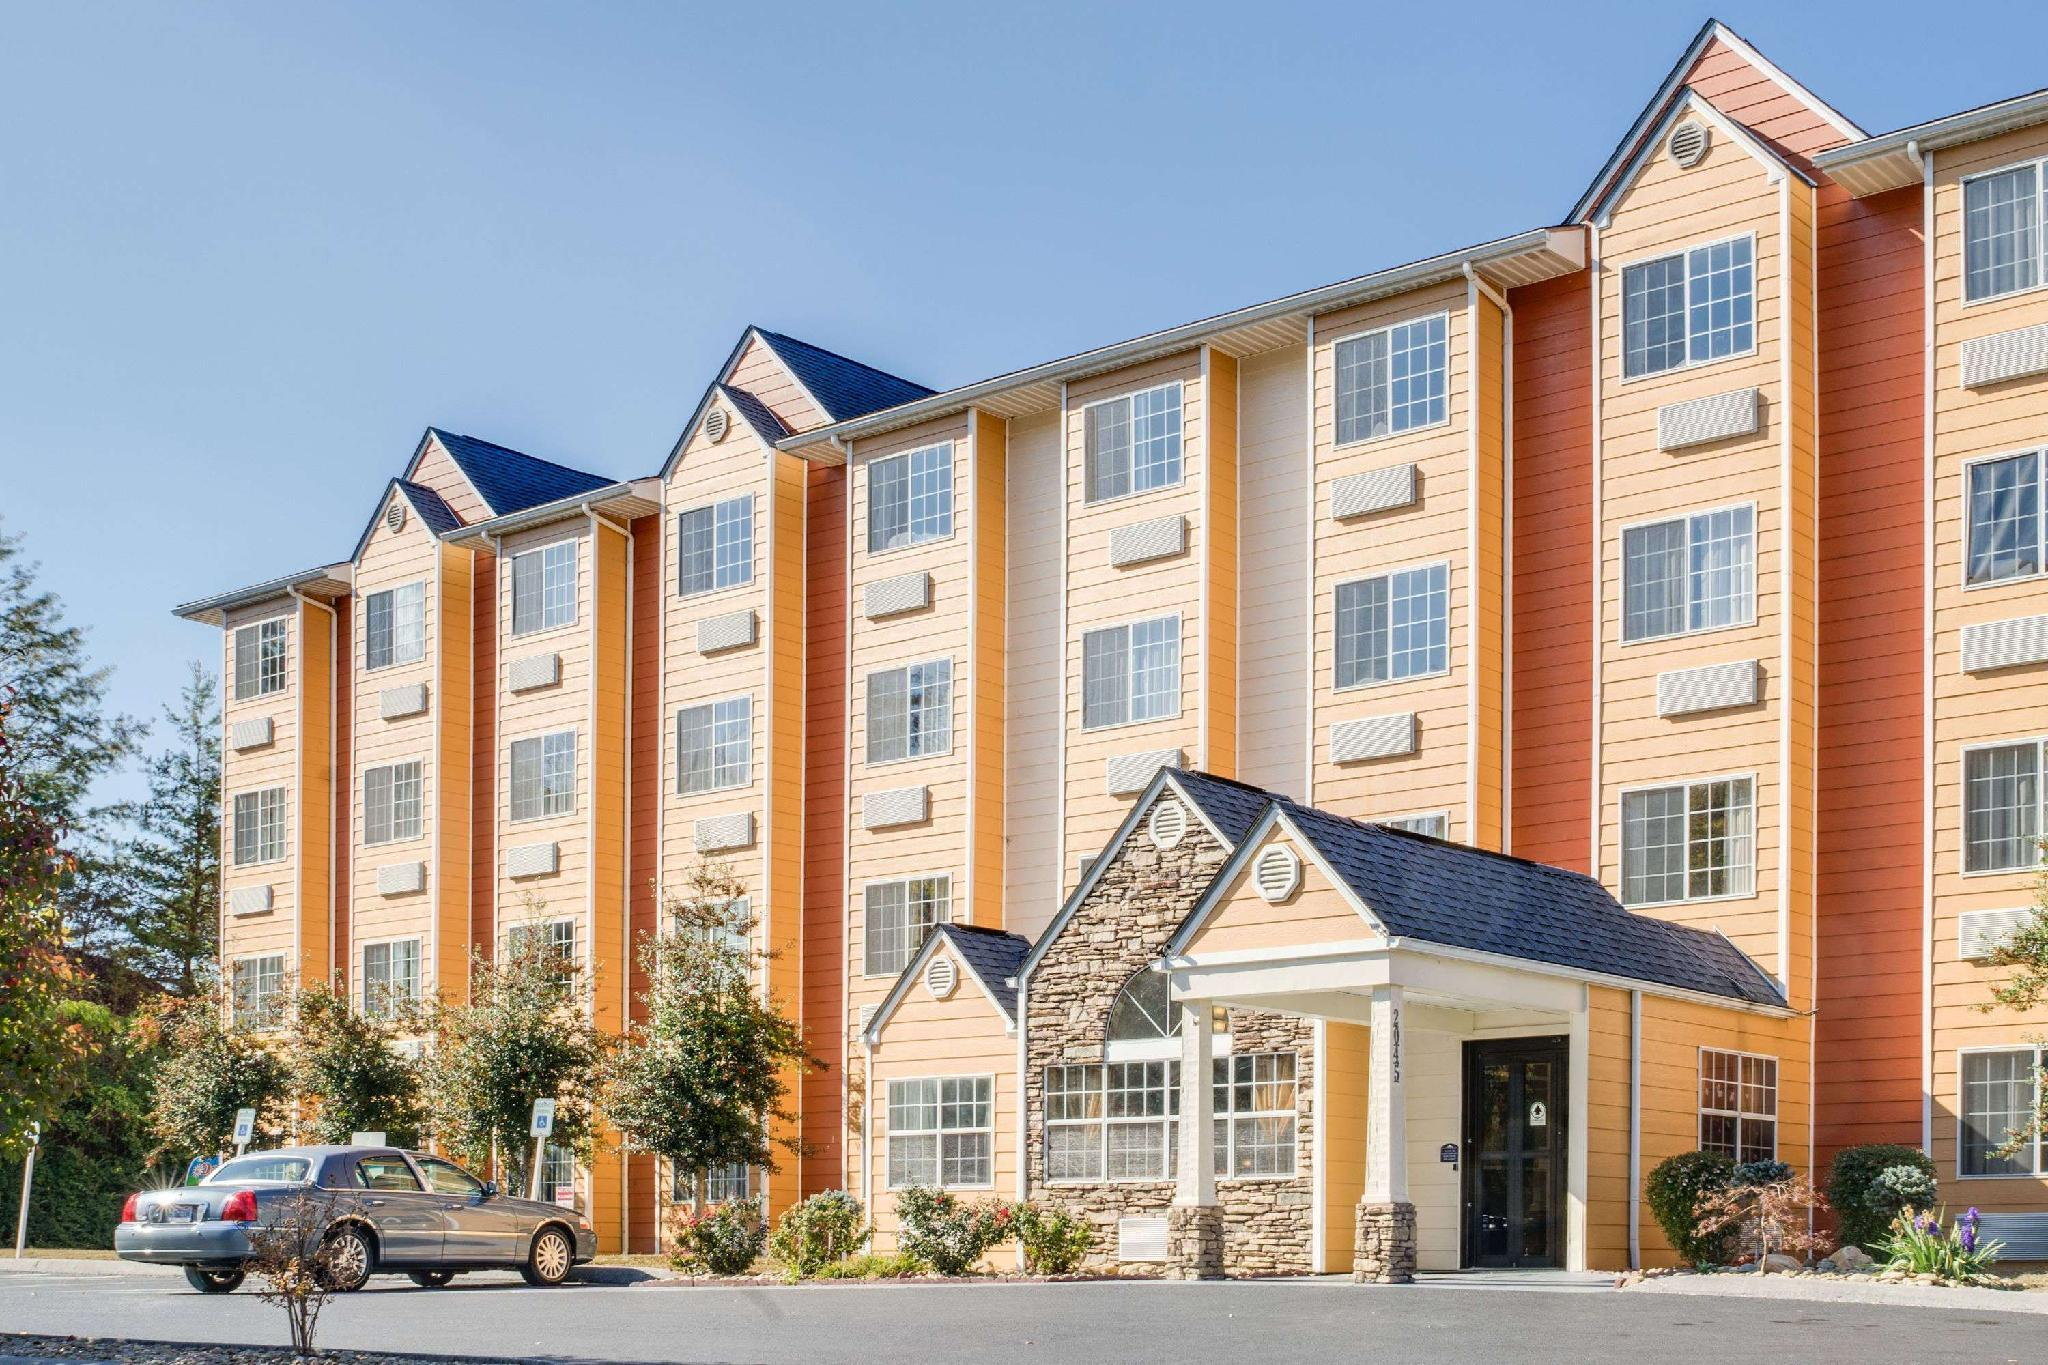 Microtel Inn And Suites By Wyndham Pigeon Forge